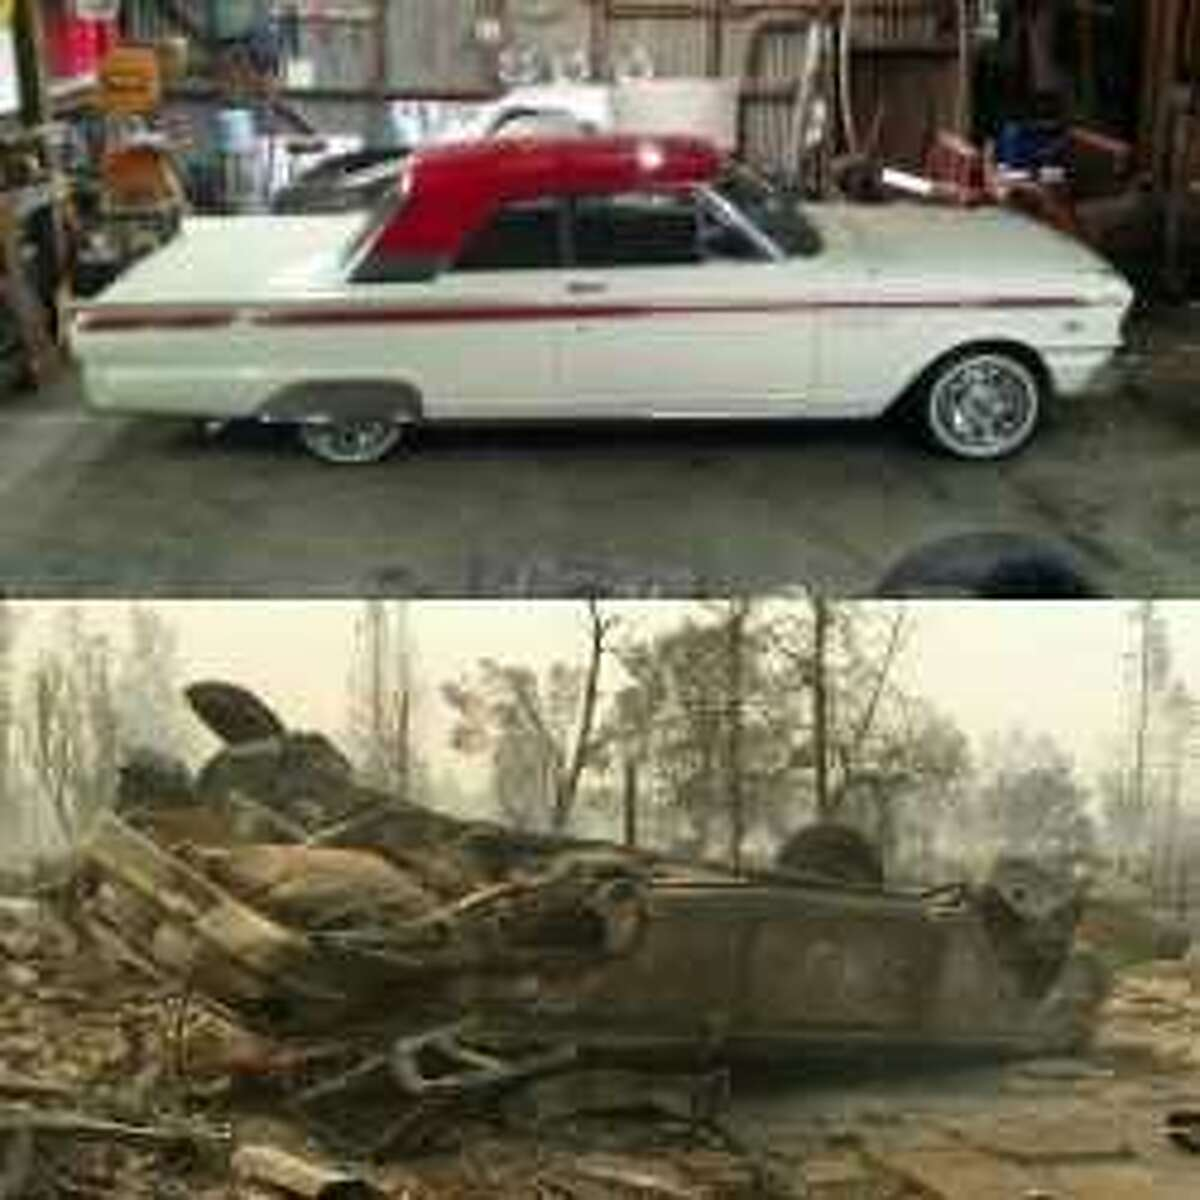 Scott Birdsall built this 1963 Fairlane hardtop for his wife following the birth of their daughter. It was destroyed by the Tubbs Fire that devastated parts of Santa Rosa.